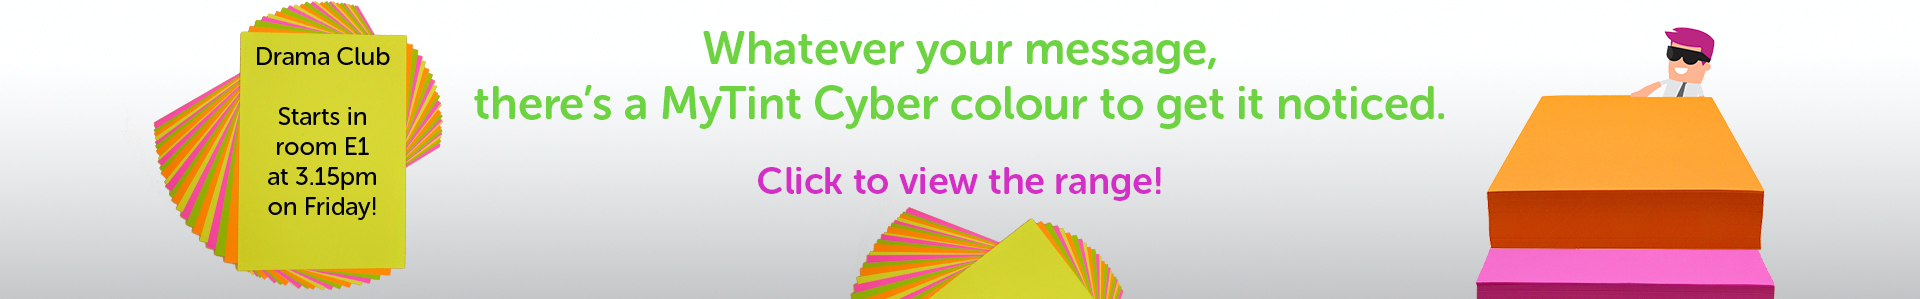 MyTint Cyber colours - bright shades for being noticed